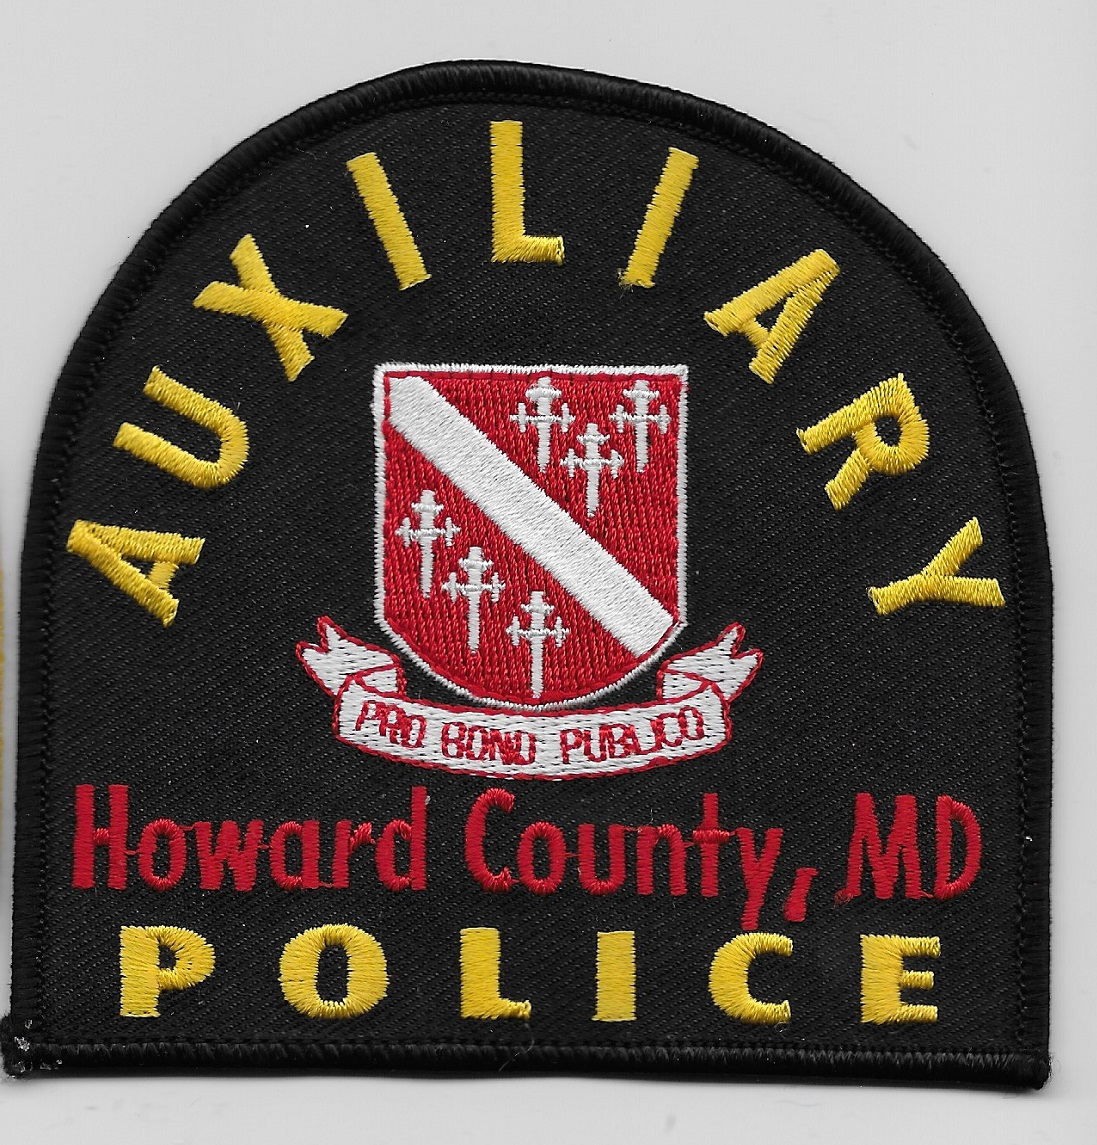 Howard County Police Auxiliary MD